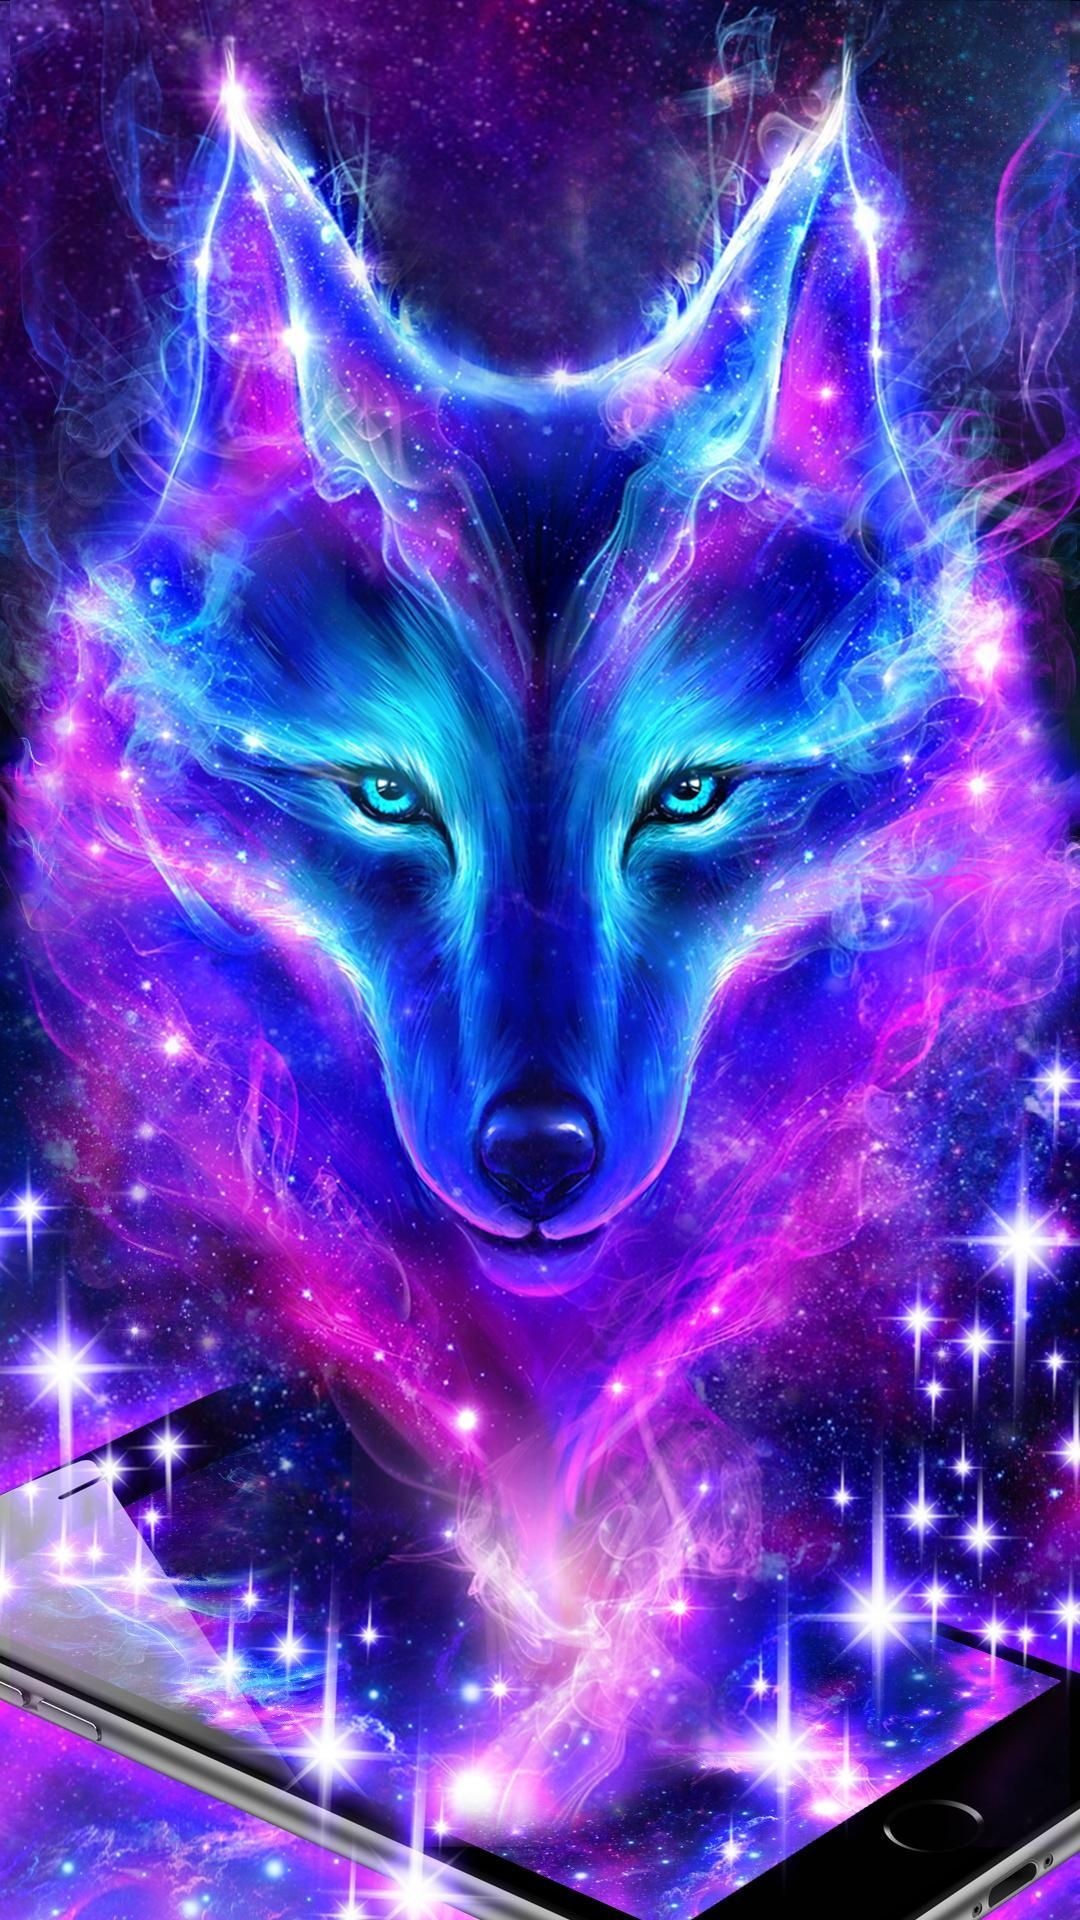 Download Spirit Wolf Wallpaper Android On High Quality Wallpaper On Hdwallpaper9 Com Iphone Android Wallpaper Galaxy Wolf Wolf Wallpaper Wolf Spirit Animal